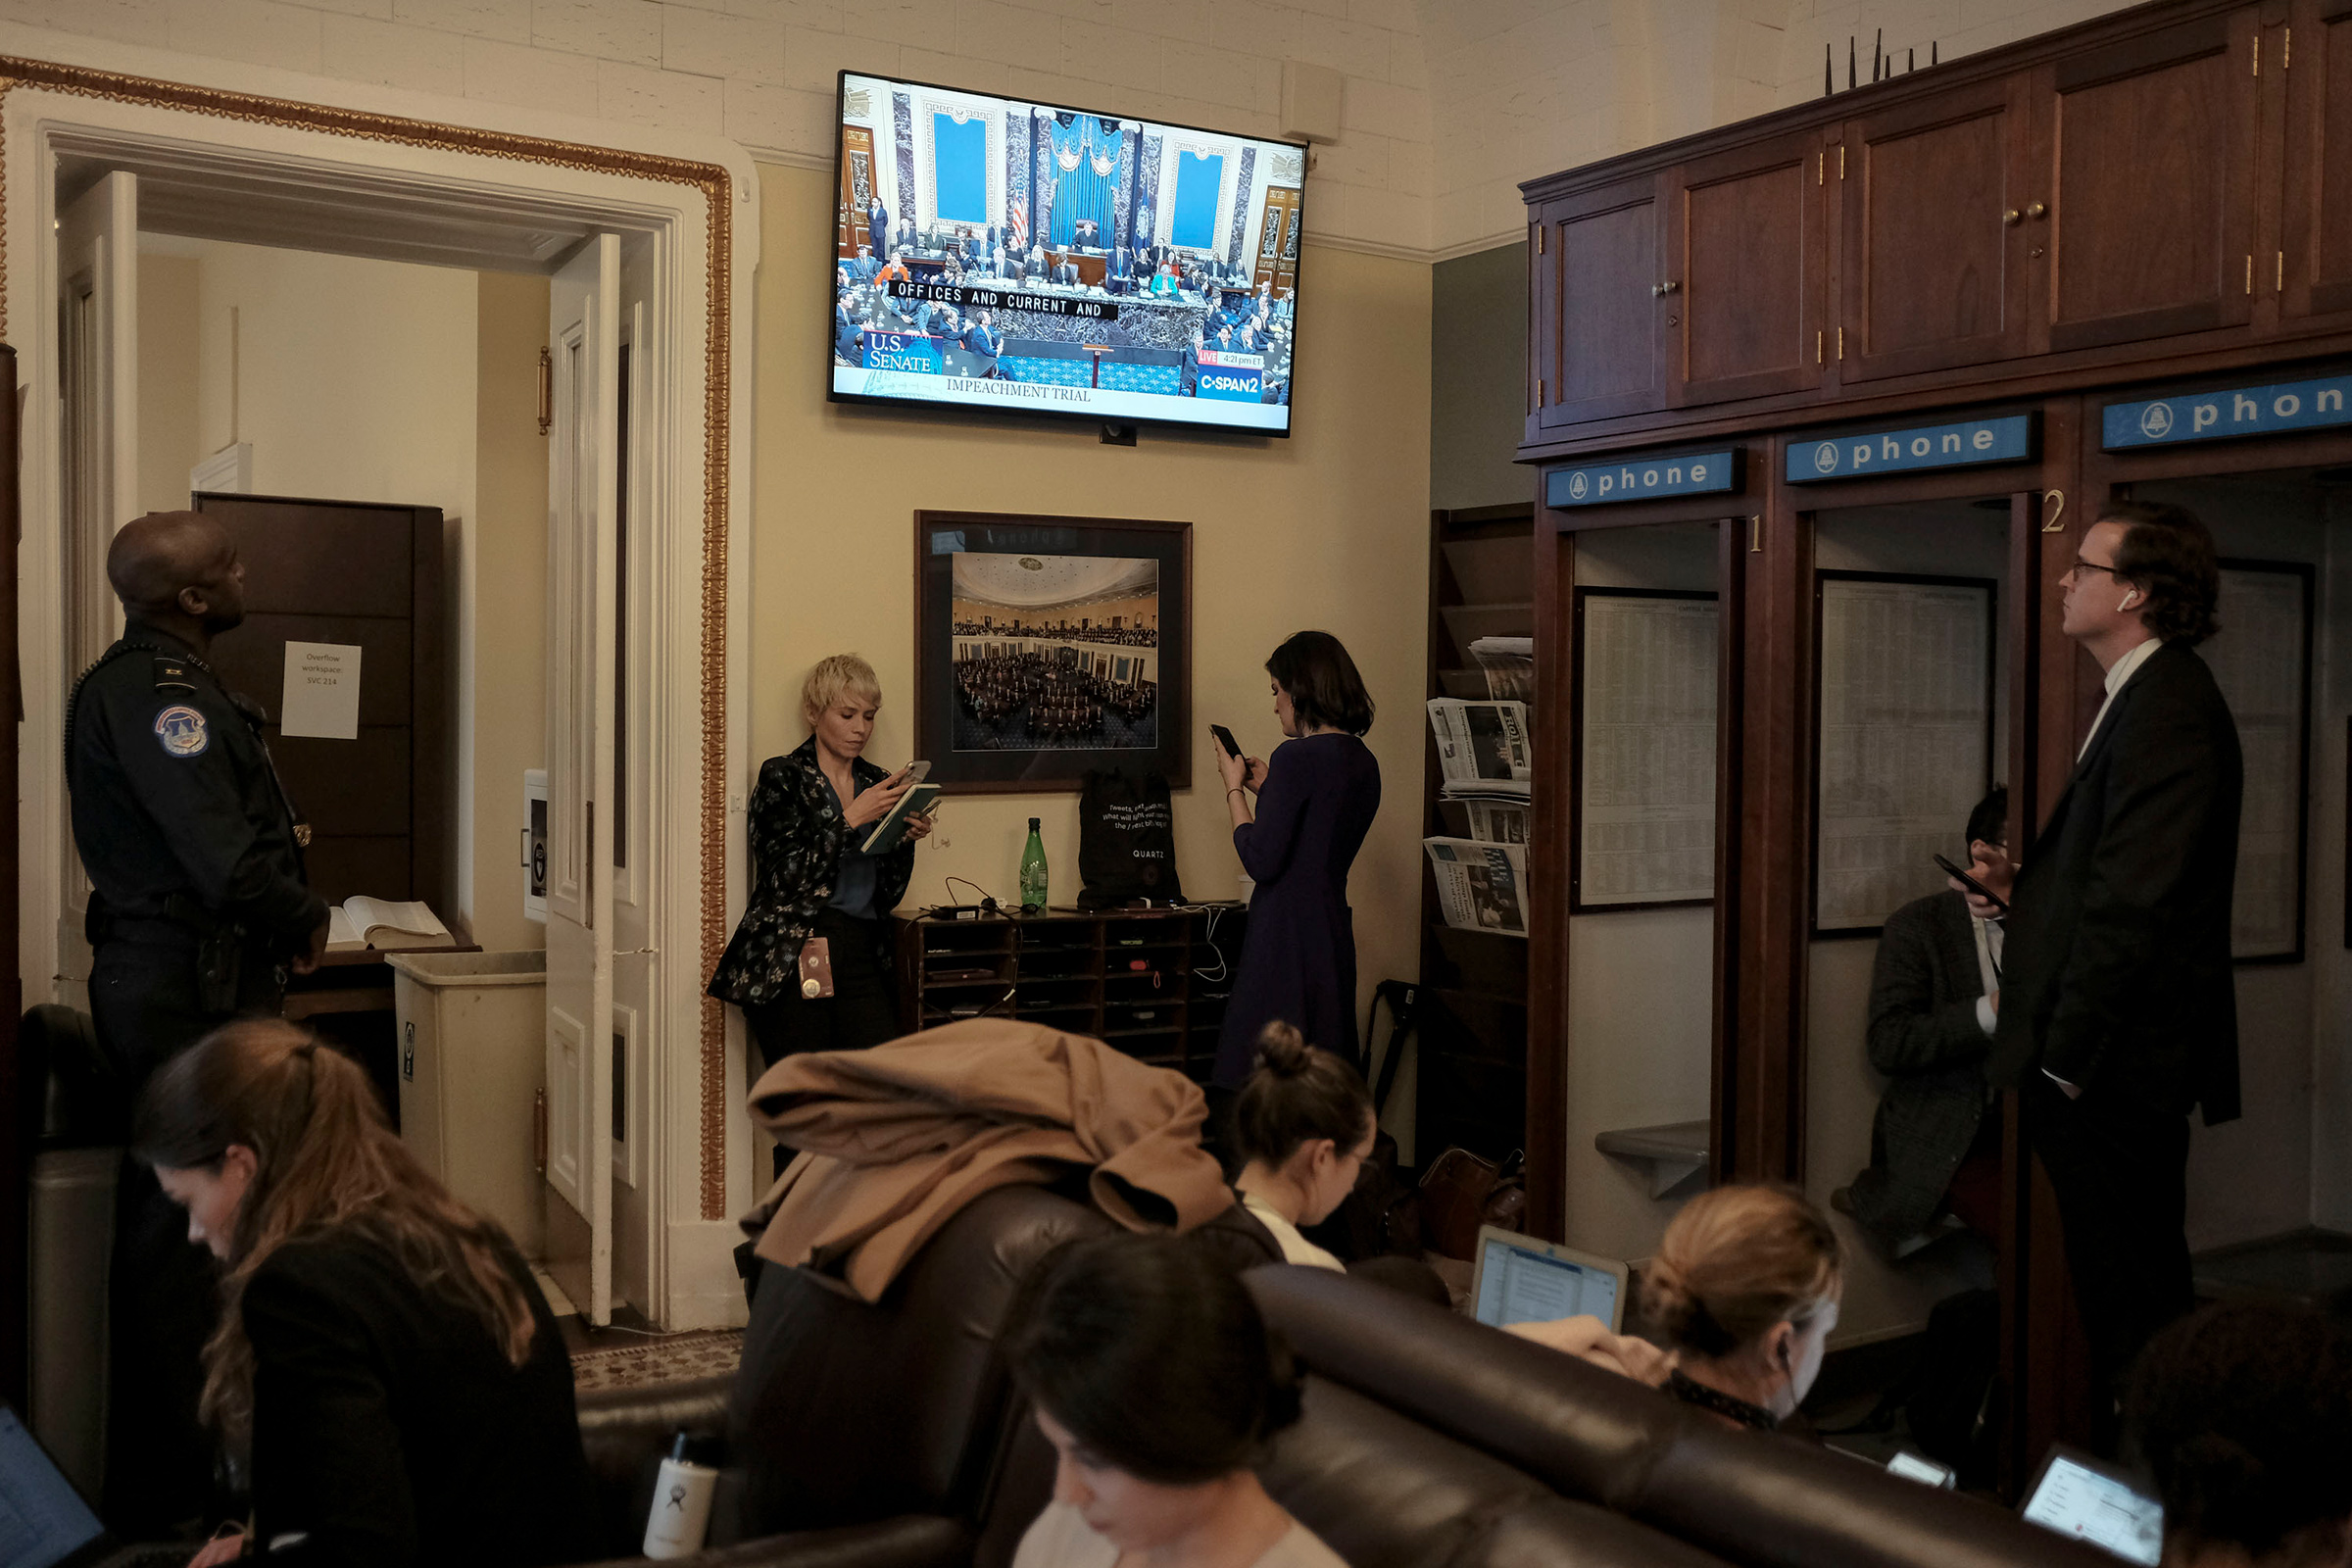 Reporters watch the Senate impeachment vote in the press gallery at the Capitol in Washington, D.C., on Feb. 5, 2020.